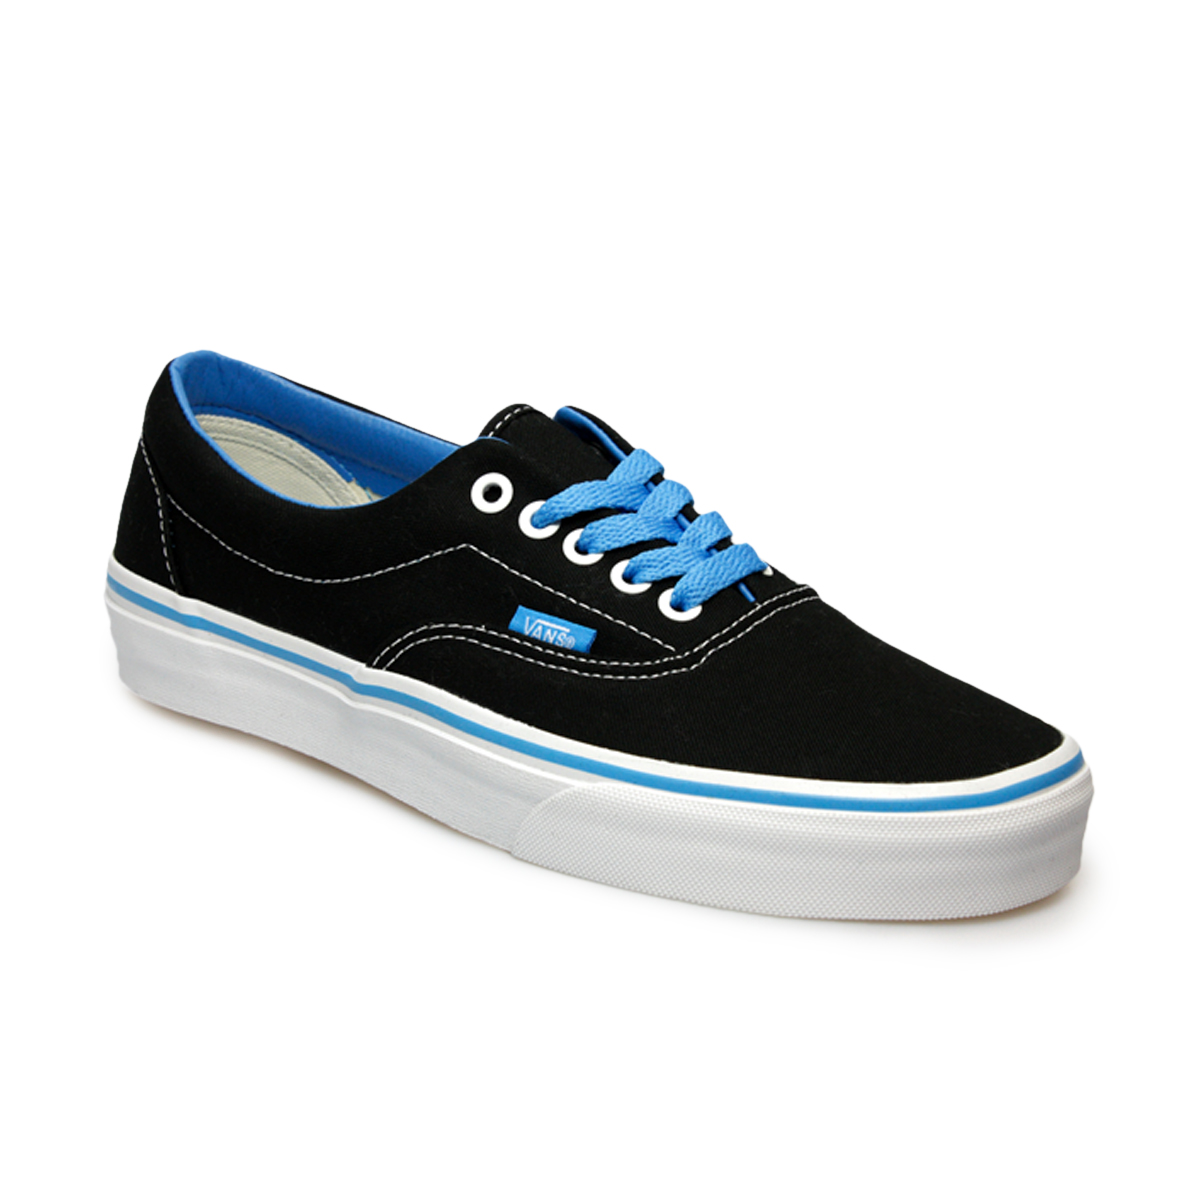 black and blue vans era